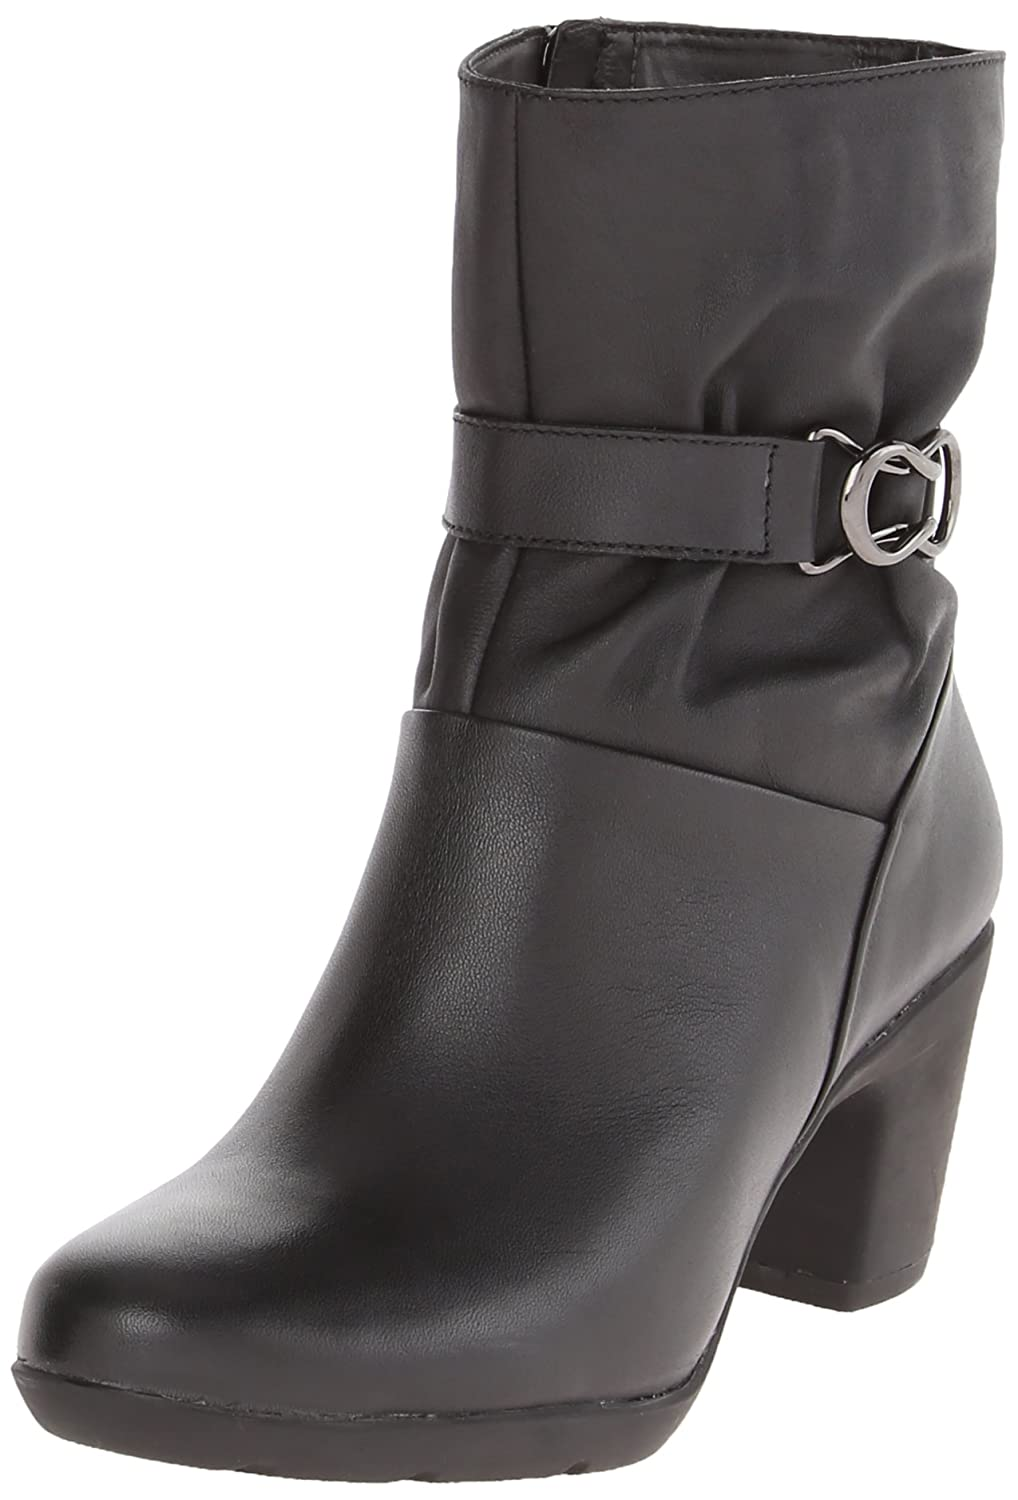 CLARKS Women's Lucette Holly Waterproof Boot Black Leather